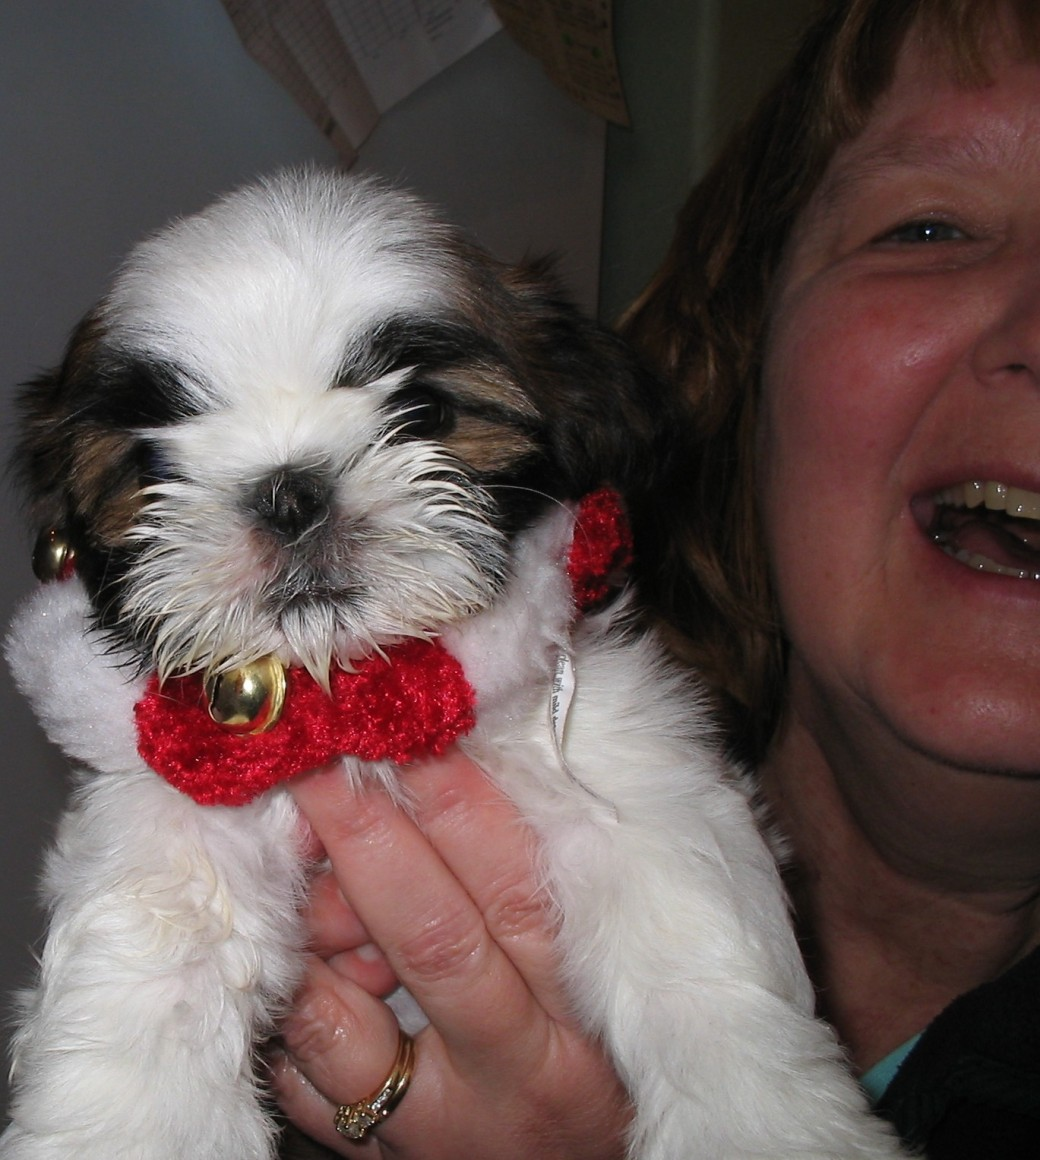 The day I got Rasta in 2008